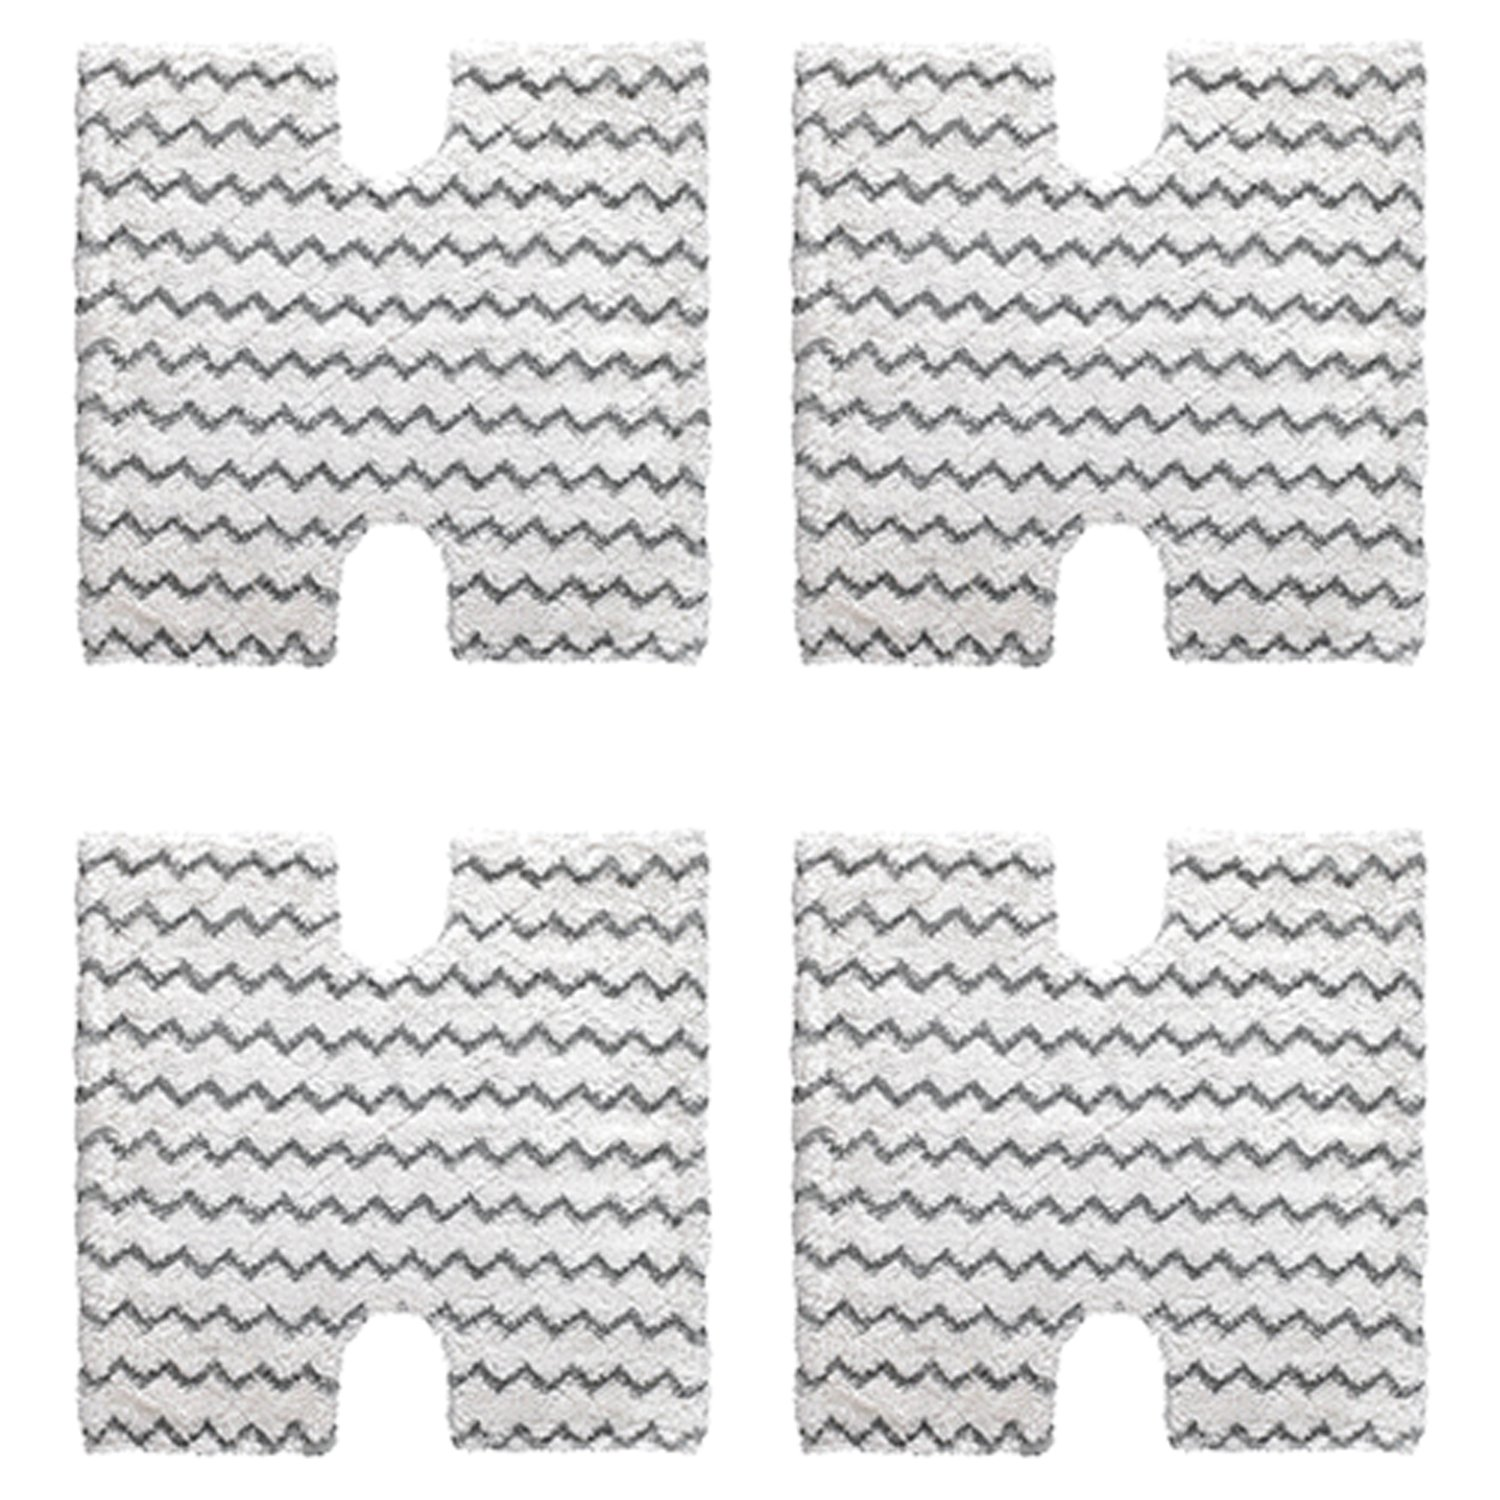 Amyehouse 4-Pack Shark Touch Free Dirt Grip Washable Microfiber Pad Replacememt for Shark Lift-Away & Genius Steam Mop S3973 S3973D S5002 S5003 S6001 S6002 S6003 Part # XTP184 & P184WQ by Amyehouse